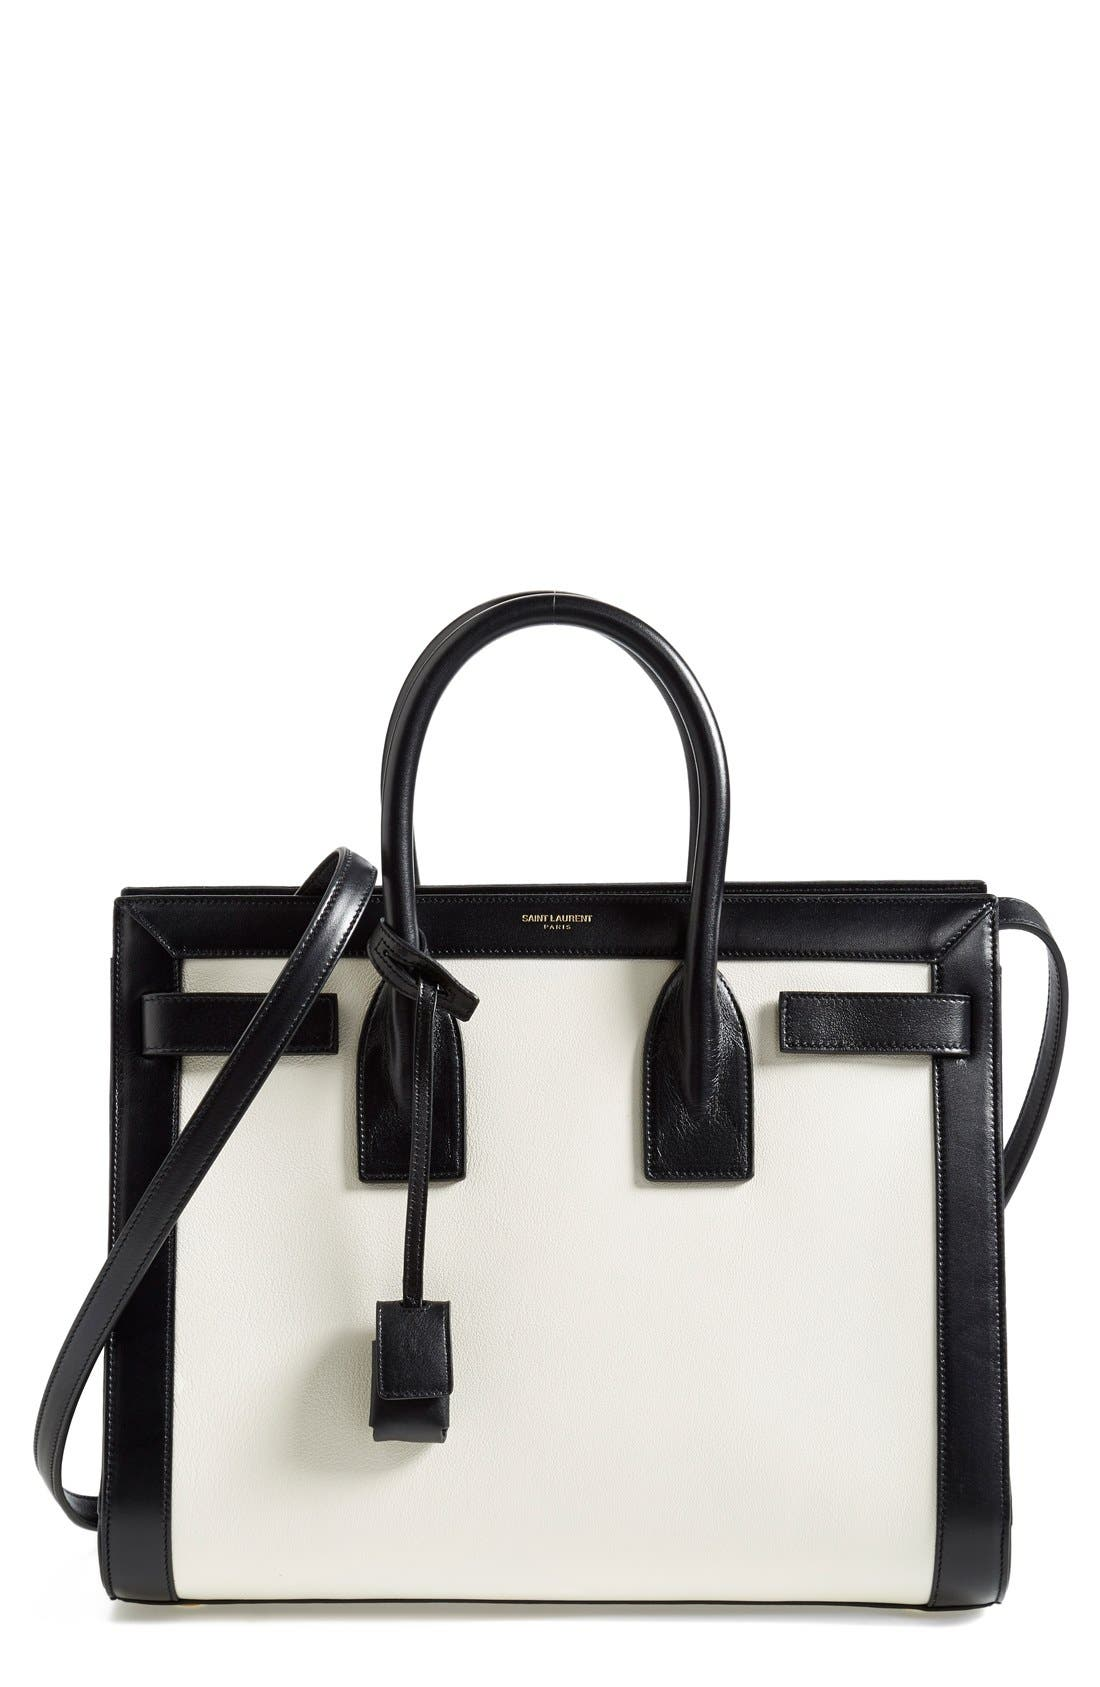 Alternate Image 1 Selected - Saint Laurent 'Small Sac de Jour' Colorblock Leather Tote